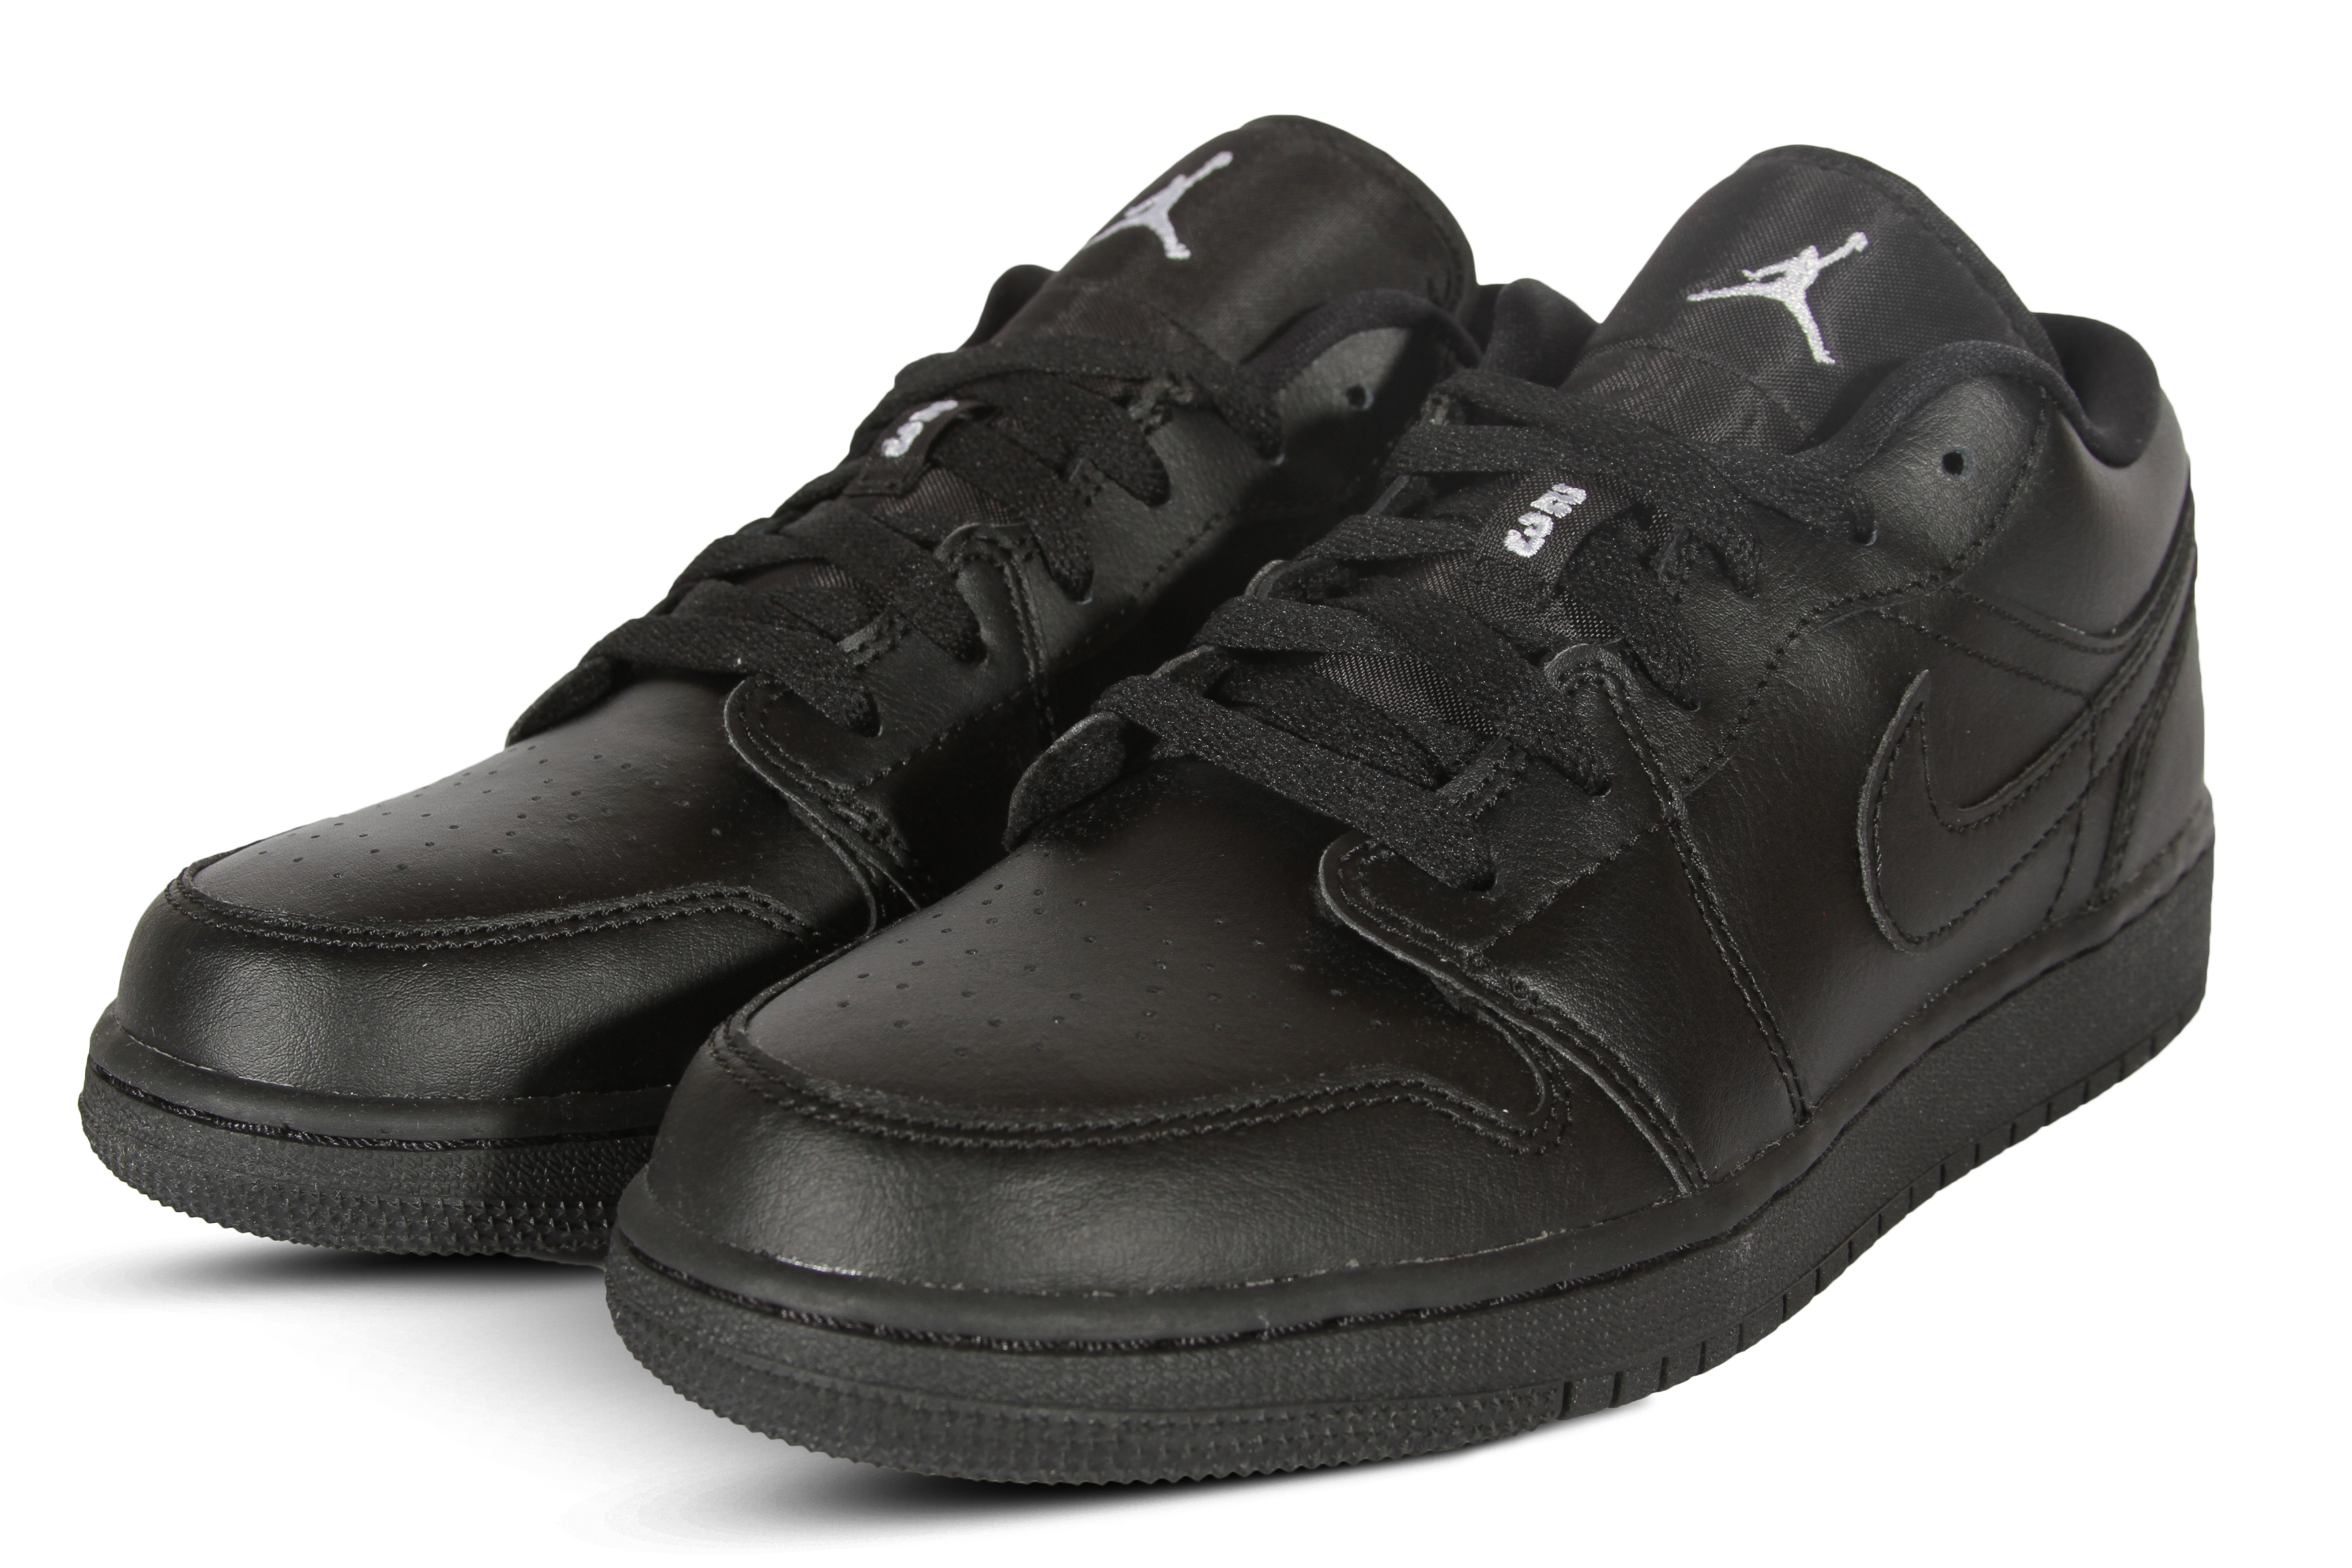 Air Jordan 1 Low BG Boy s Grade School (big Kids) Shoes 553560-006 6y.  About this product. Picture 1 of 6  Picture 2 of 6 ... 00b997483